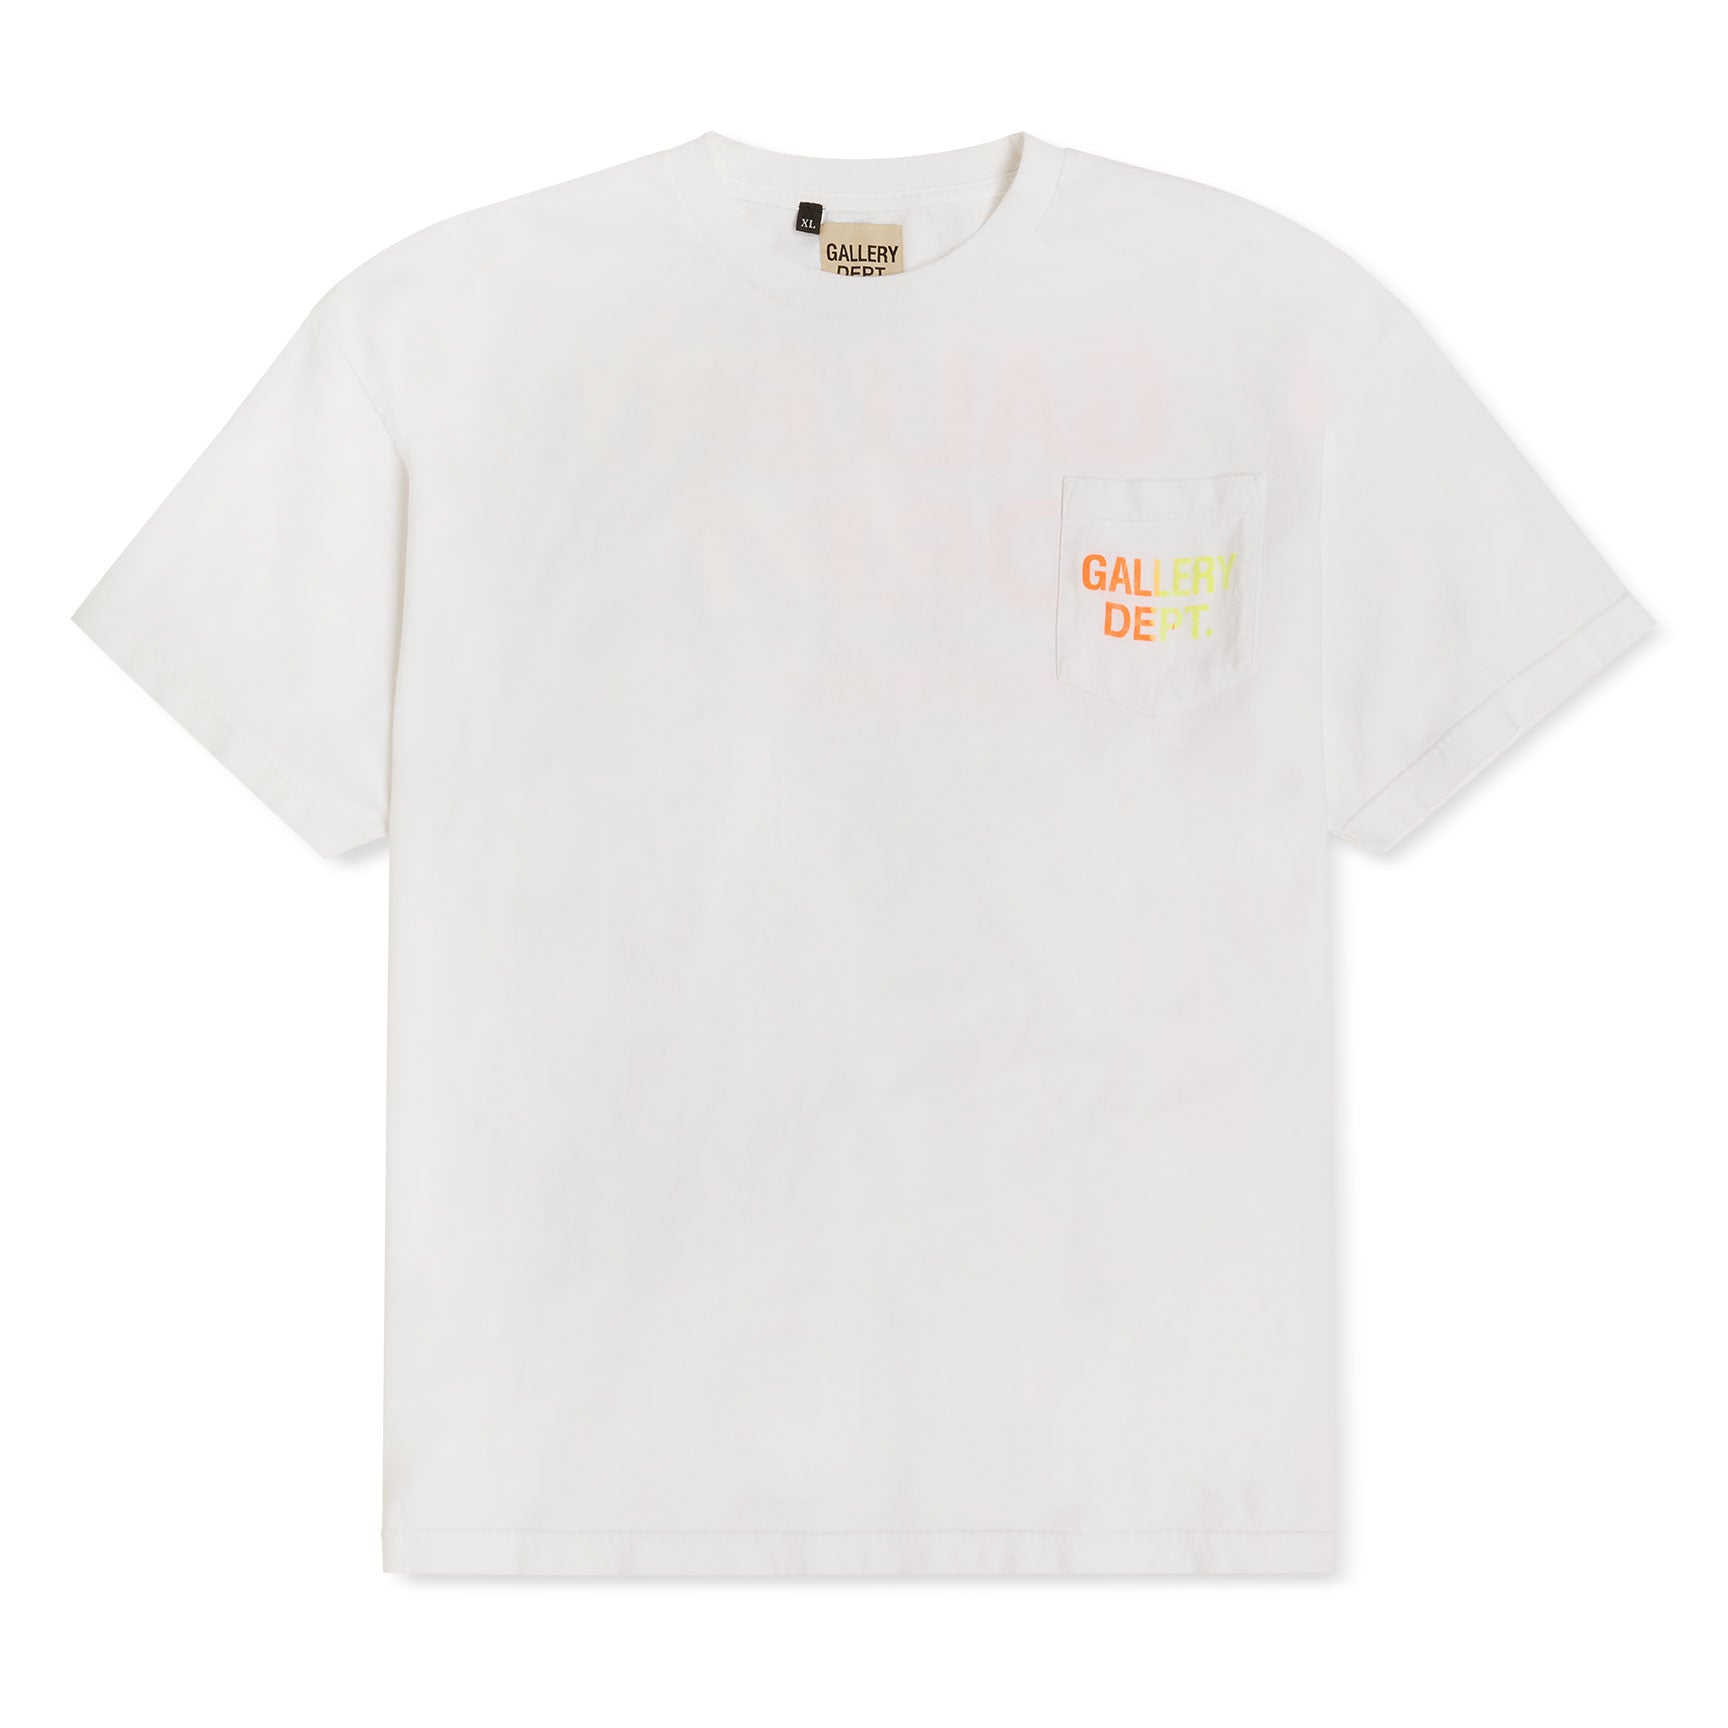 Boardwalk Pocket tee